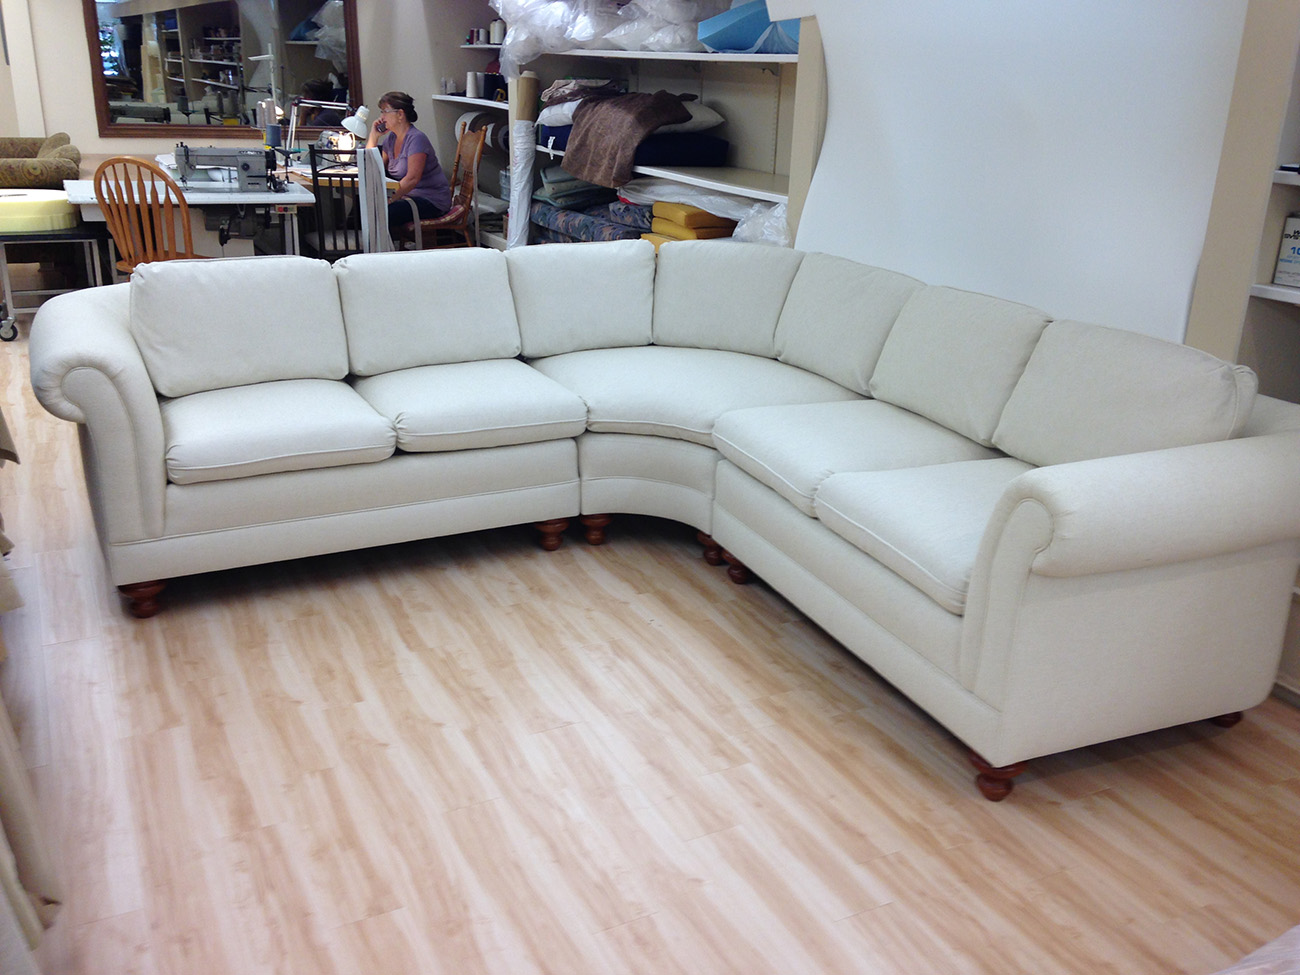 Sofa Set Repair Services In Porur Sectional Sofa Re Upholstery Foamland And Ted 39s